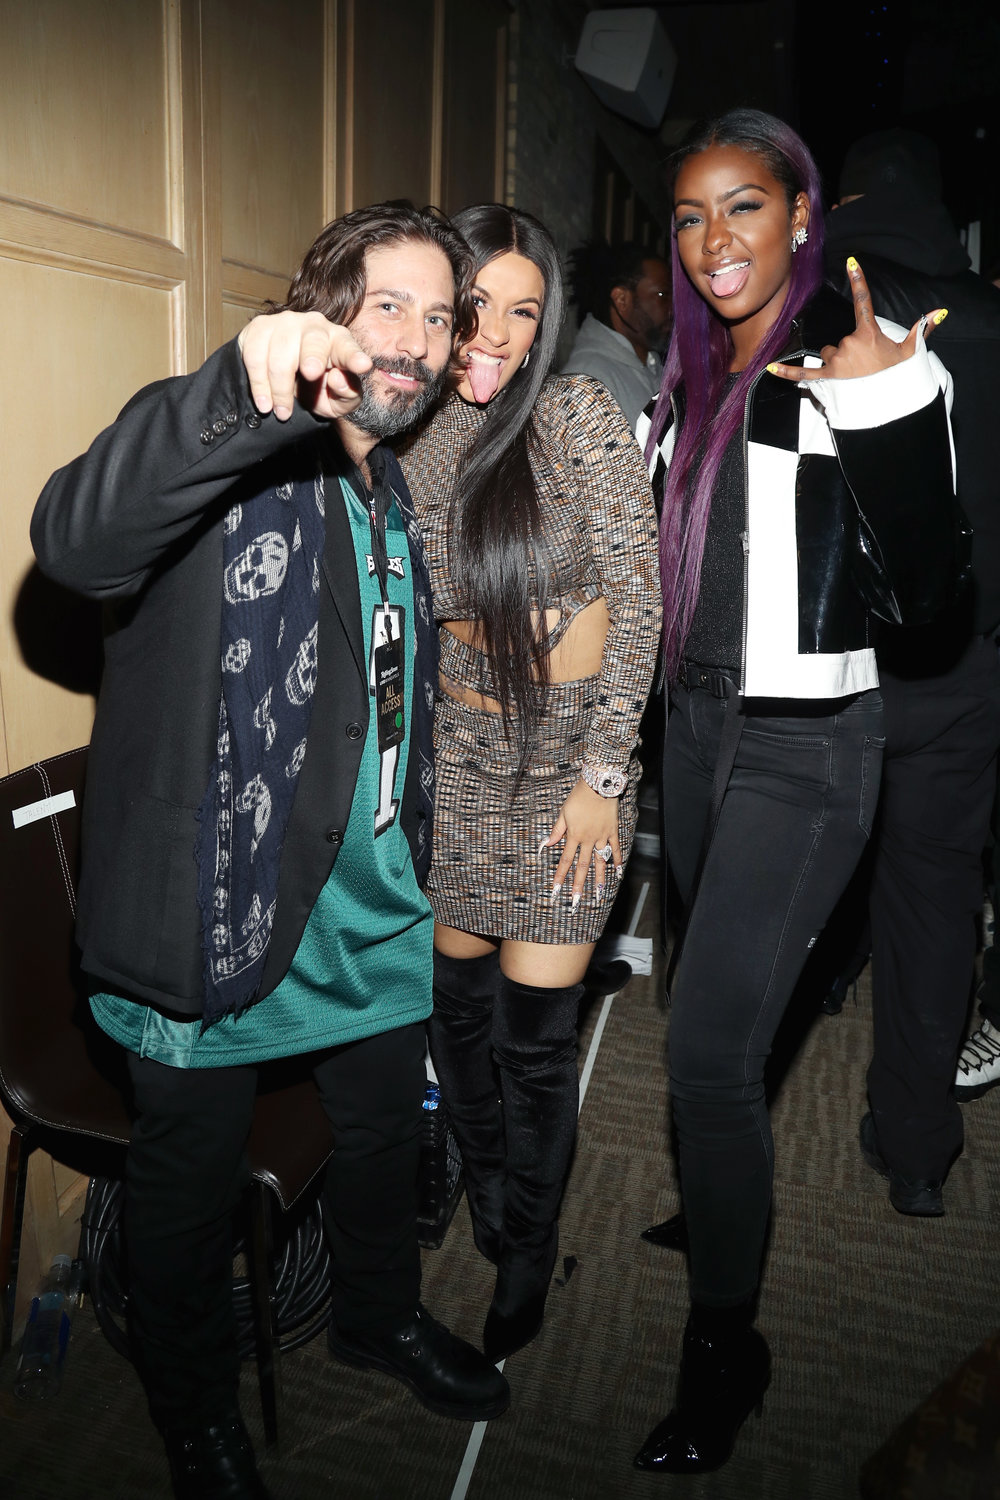 Michael Heller, Cardi B and Justine Skye